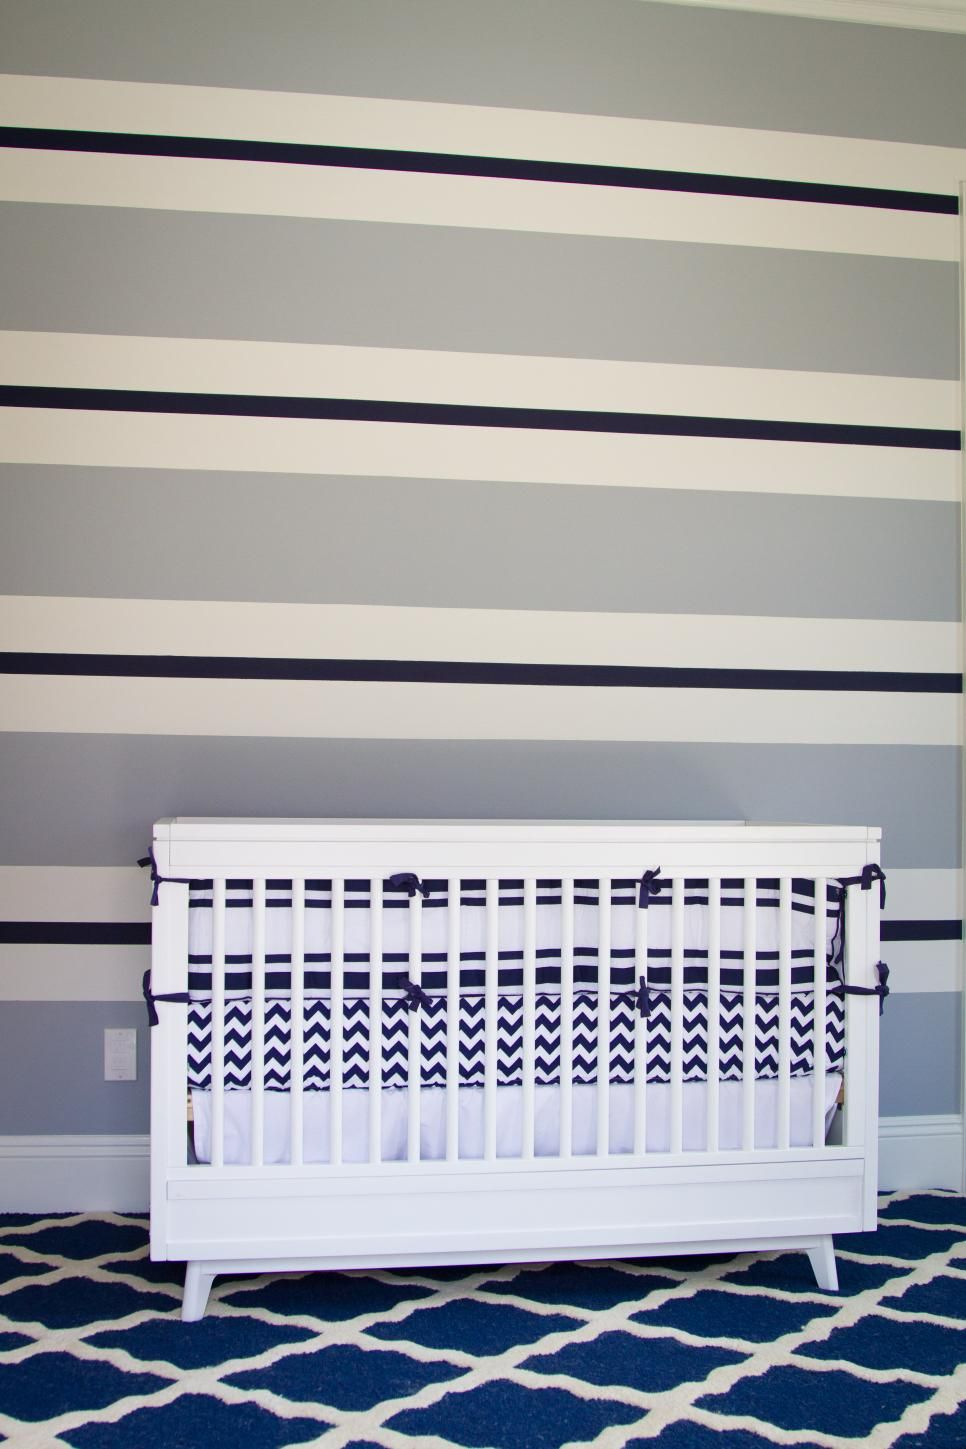 Painted Horizontal Stripes Adorn An Accent Wall In This